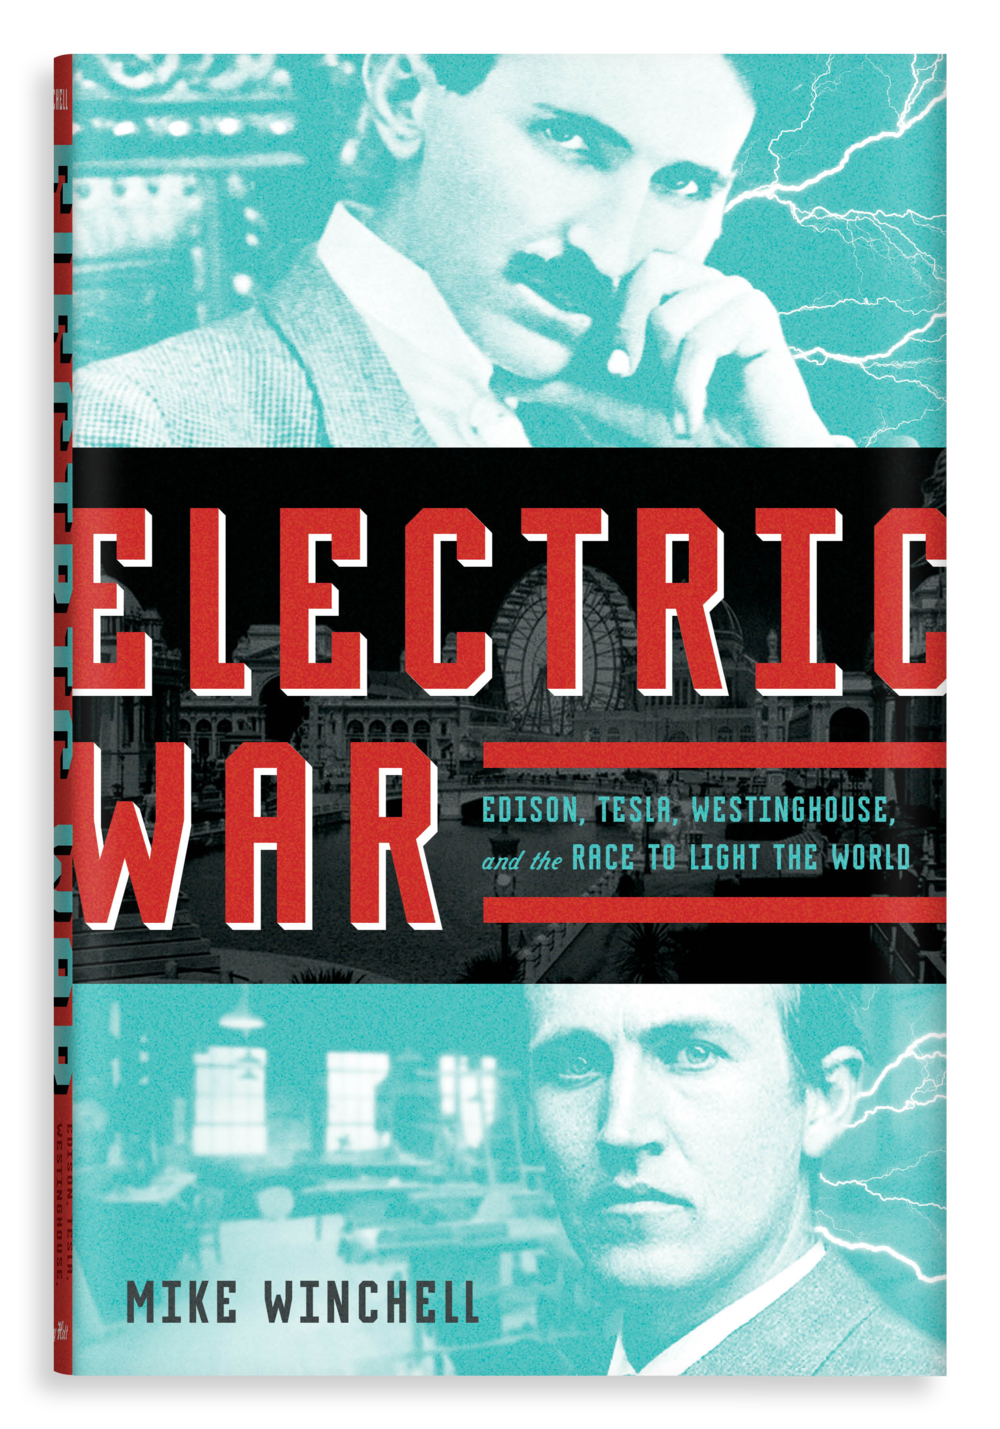 electricwar_front.png